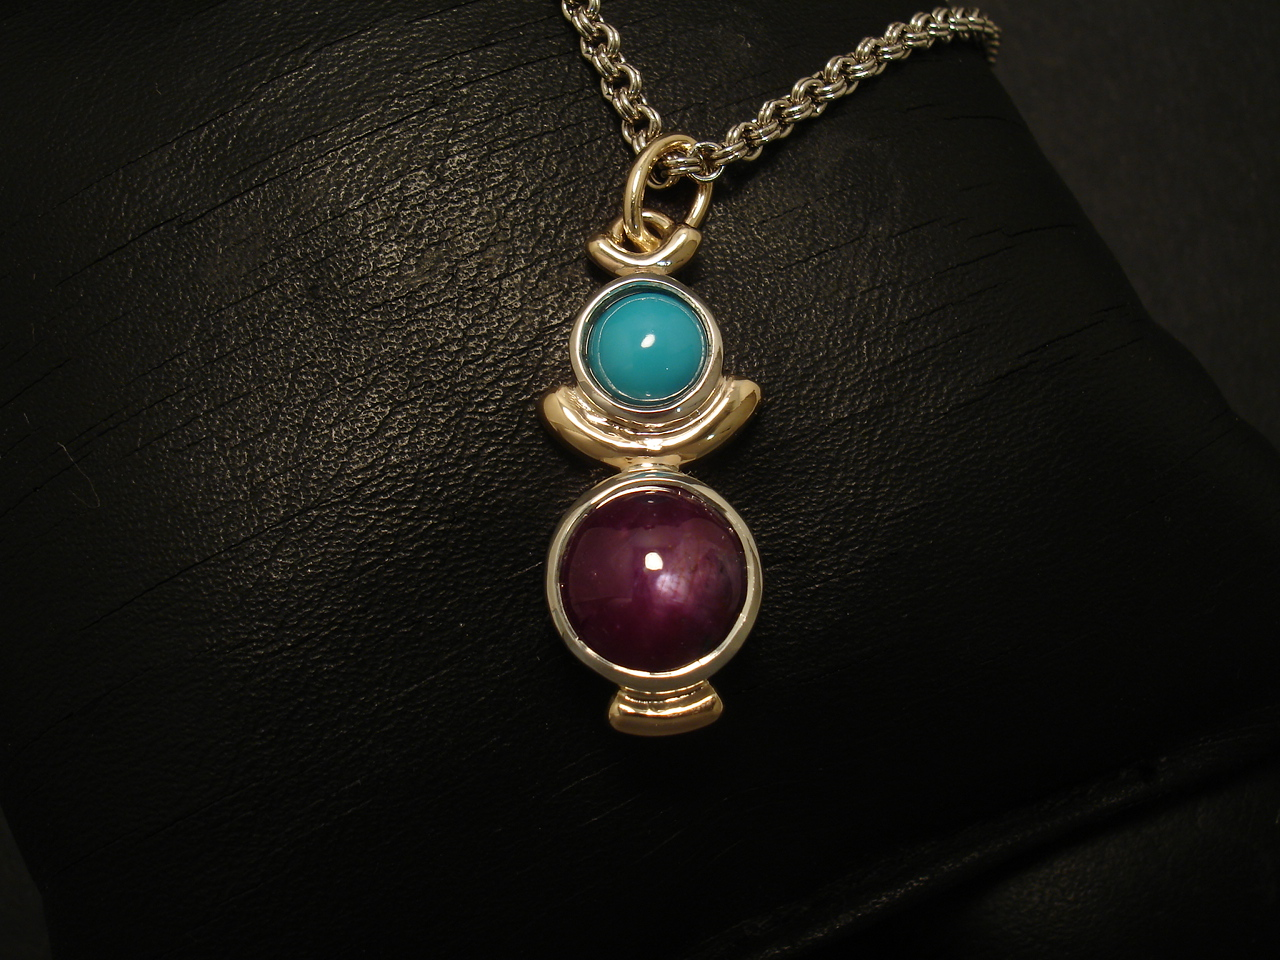 mock the ruby aura pendant necklace gold jewelry withcz jewels gods products